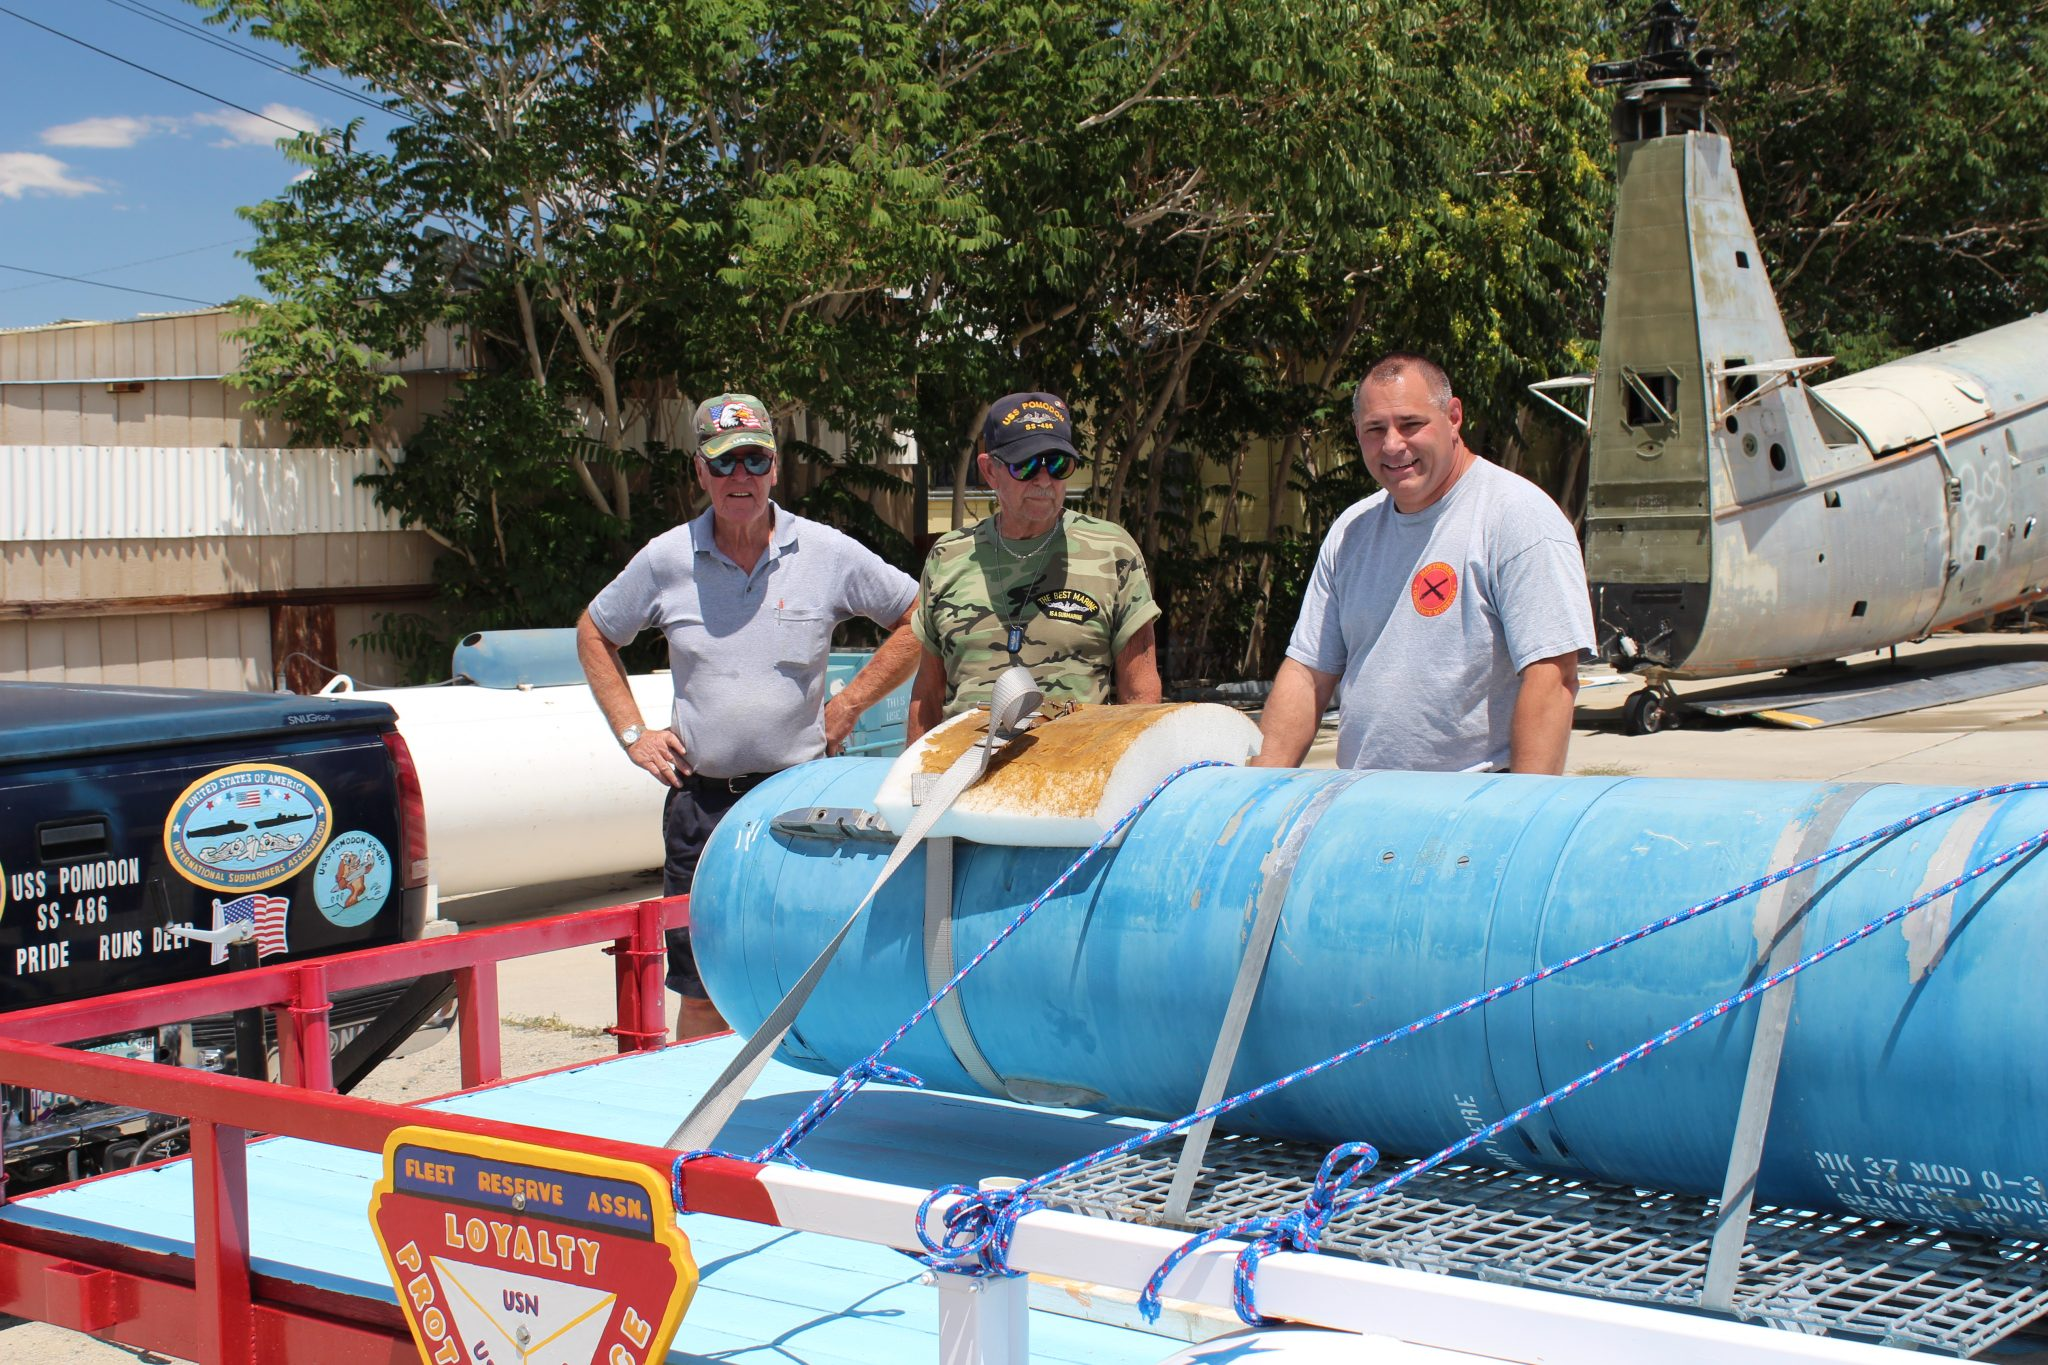 Torpedo donated to Fleet Reserve Association